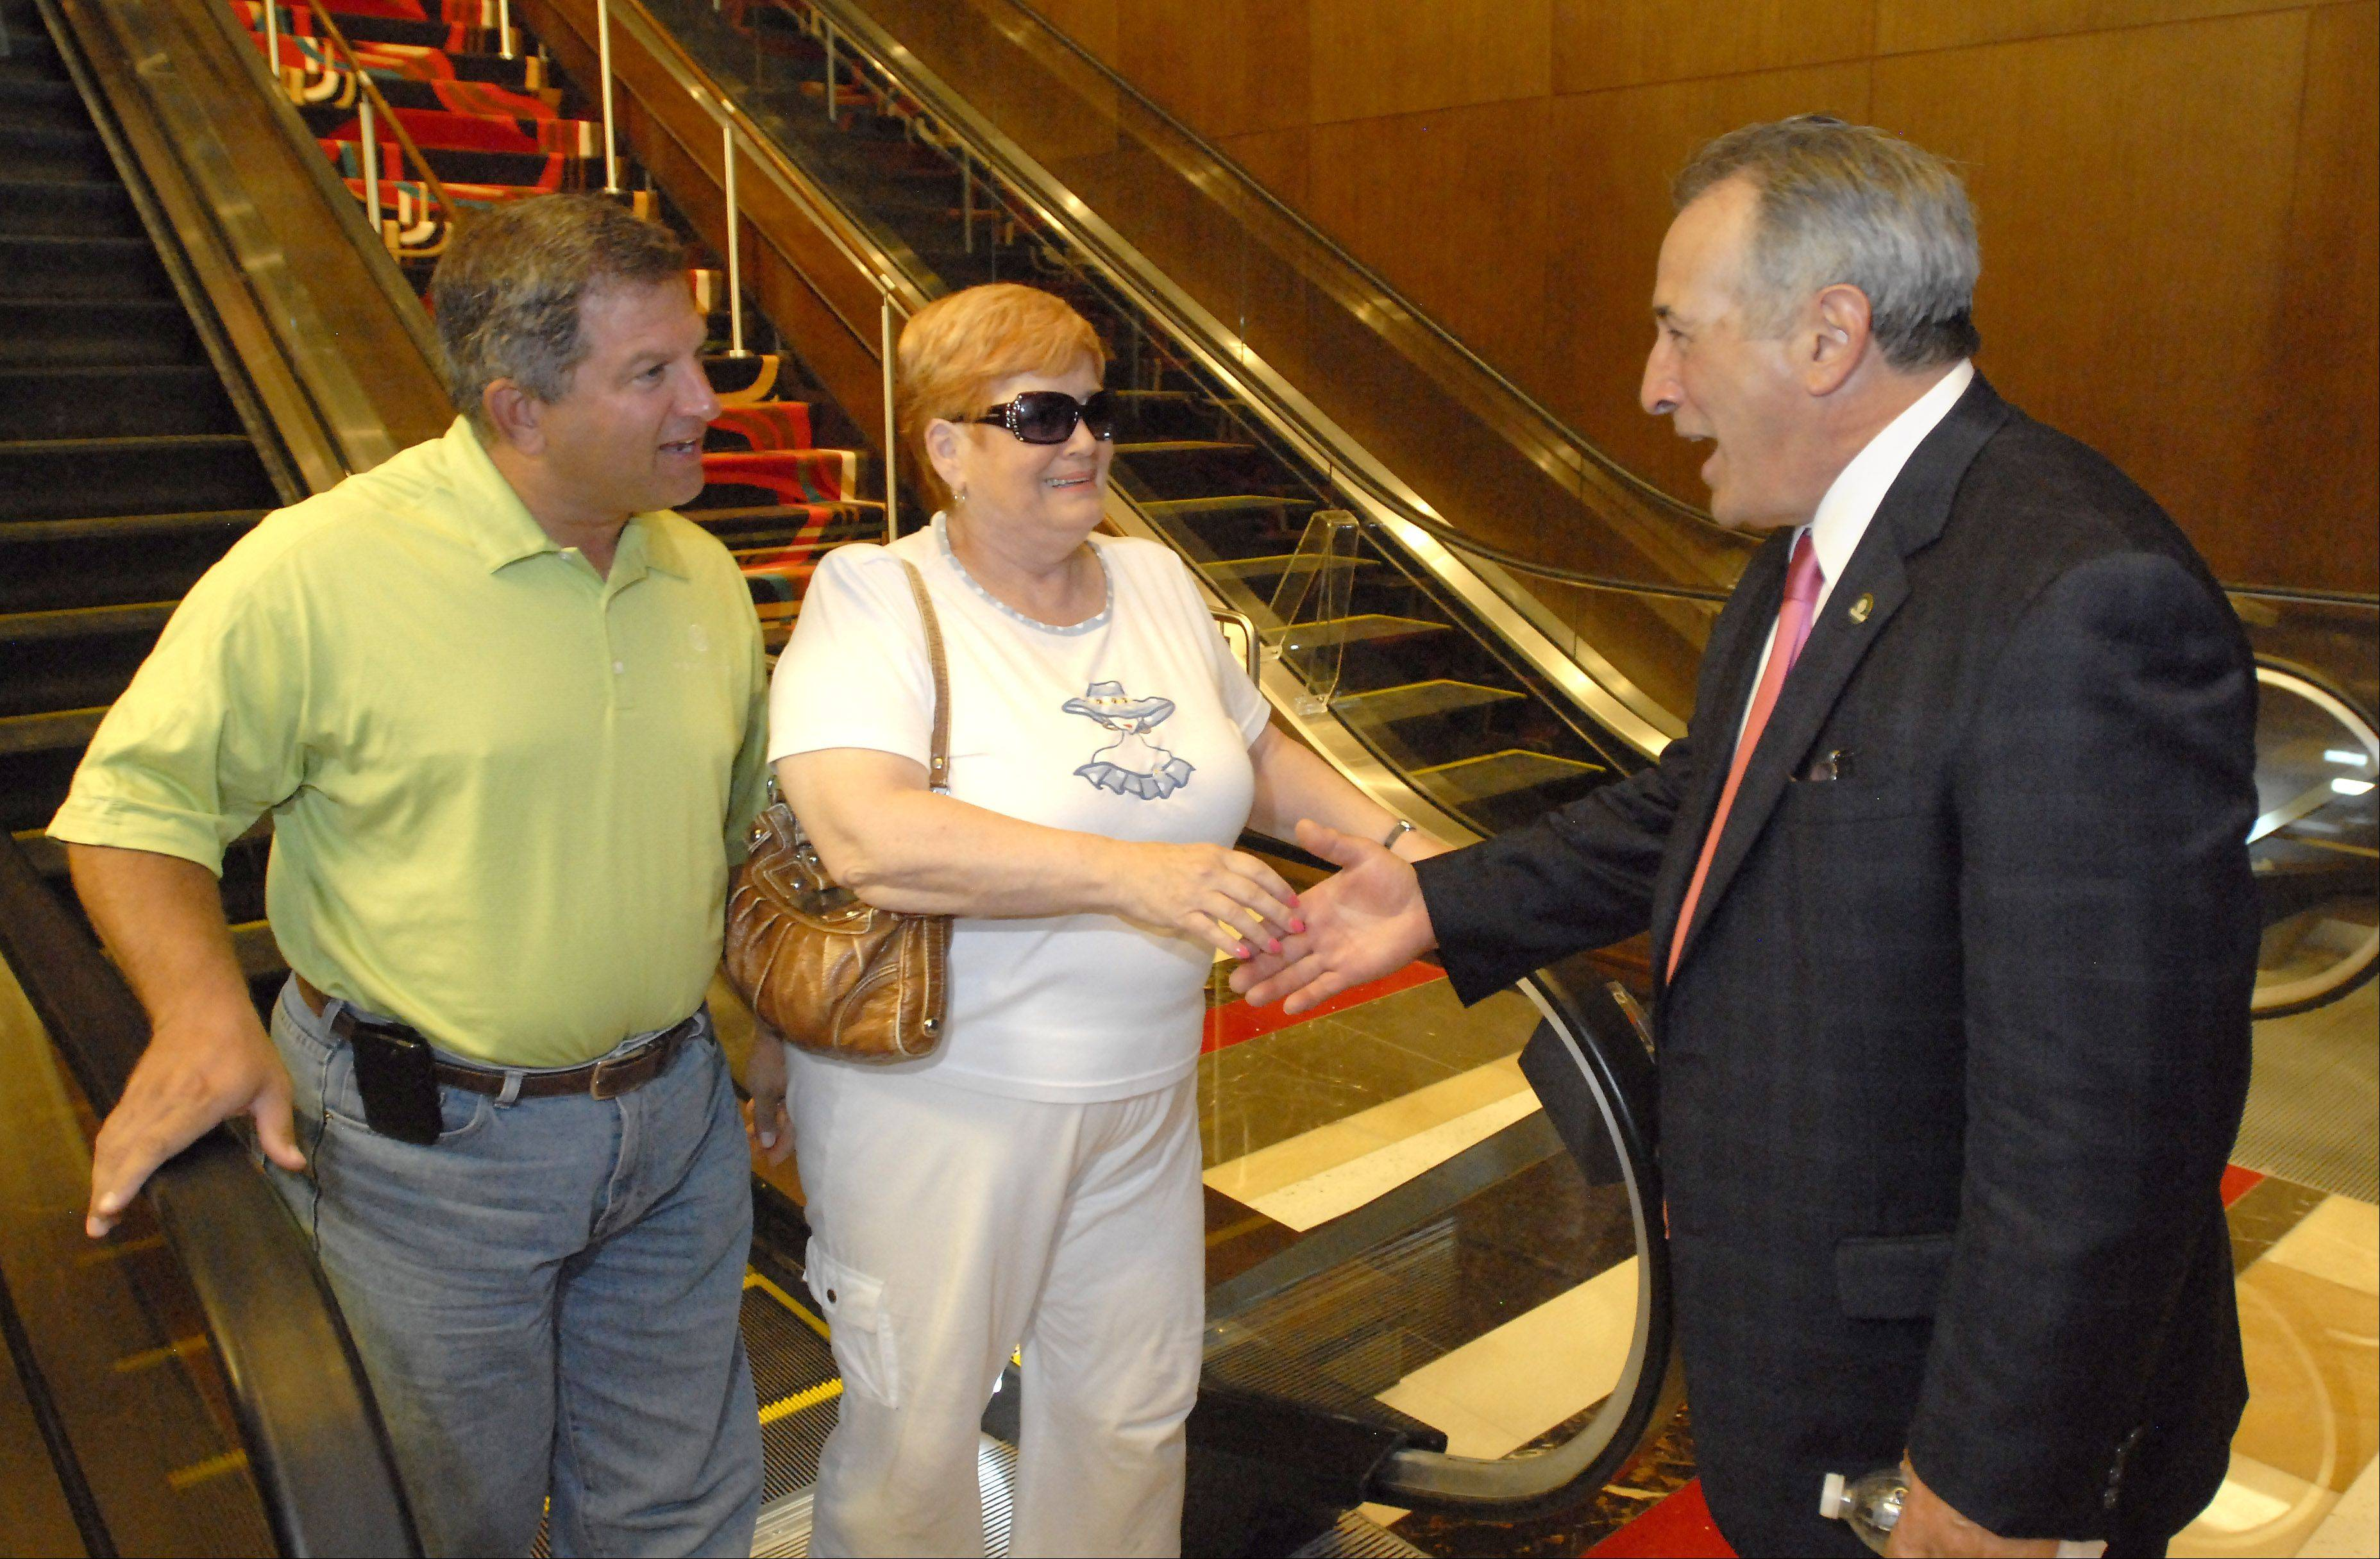 Des Plaines Mayor Marty Moylan greets gamblers Scott Rose of Lindenhurst and Fran Derkowitz of Philadelphia during the grand opening of the Rivers Casino Monday.